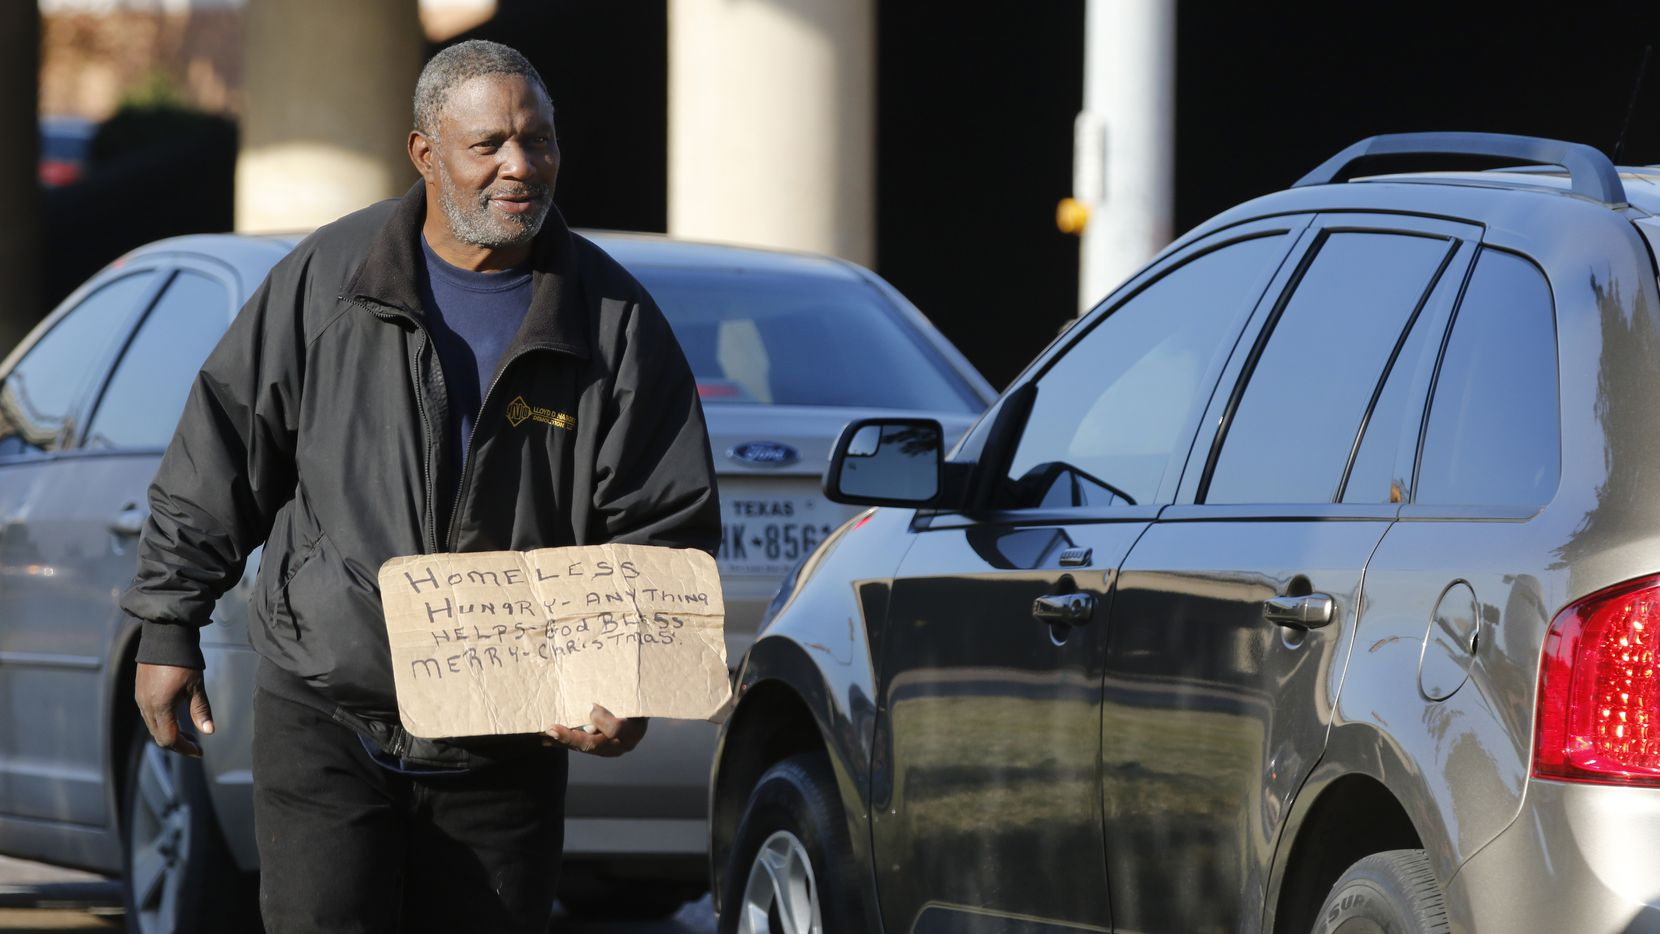 Louis Harris, 57, and homeless, panhandles at the intersection I-35E and Market Center in Dallas on Monday, December 12, 2016. He said he is homeless. (David Woo/The Dallas Morning News)